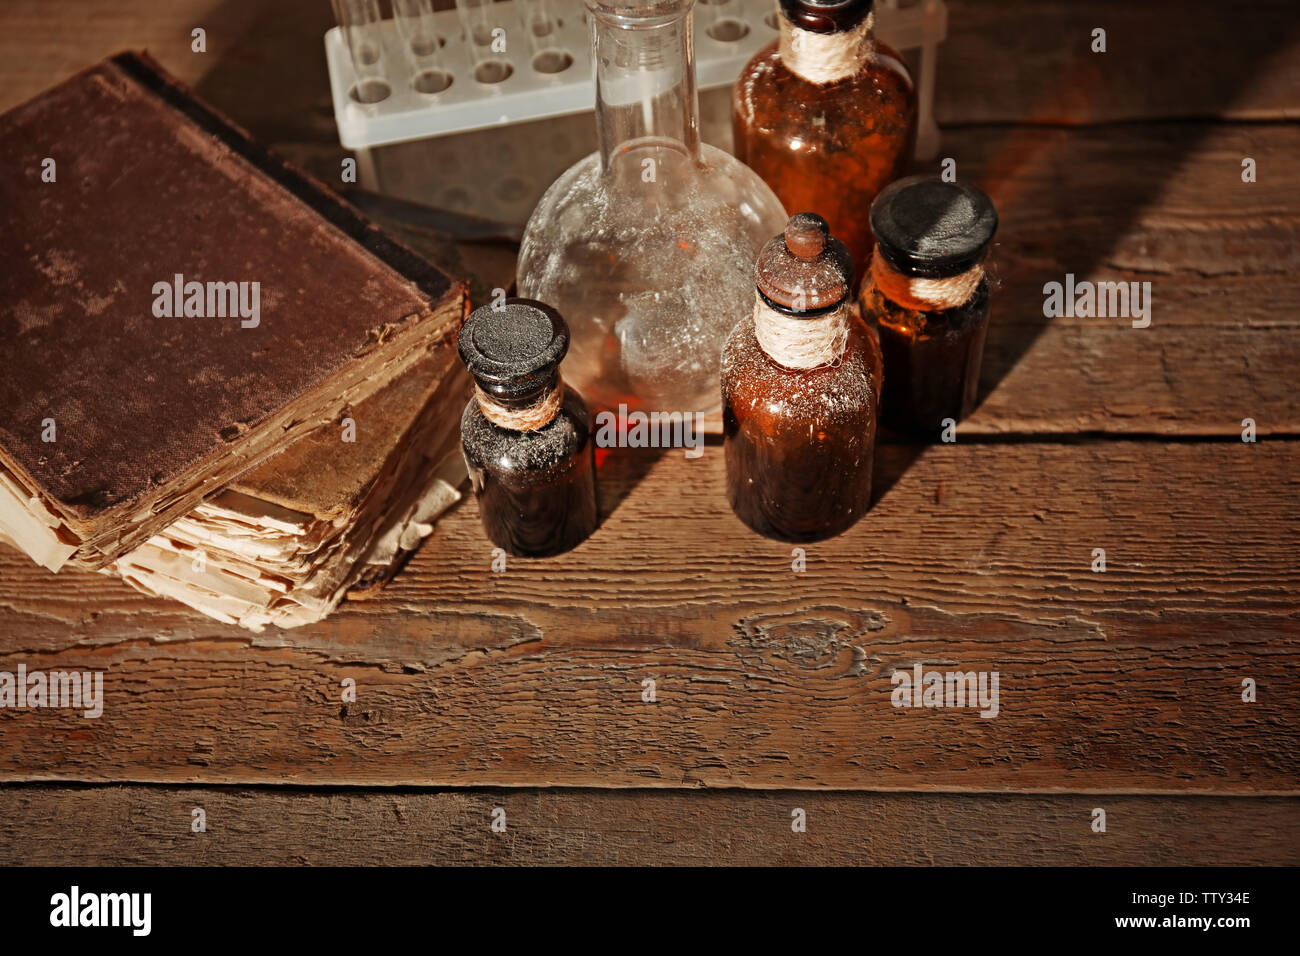 Vintage glass bottles with flask on wooden background, closeup - Stock Image